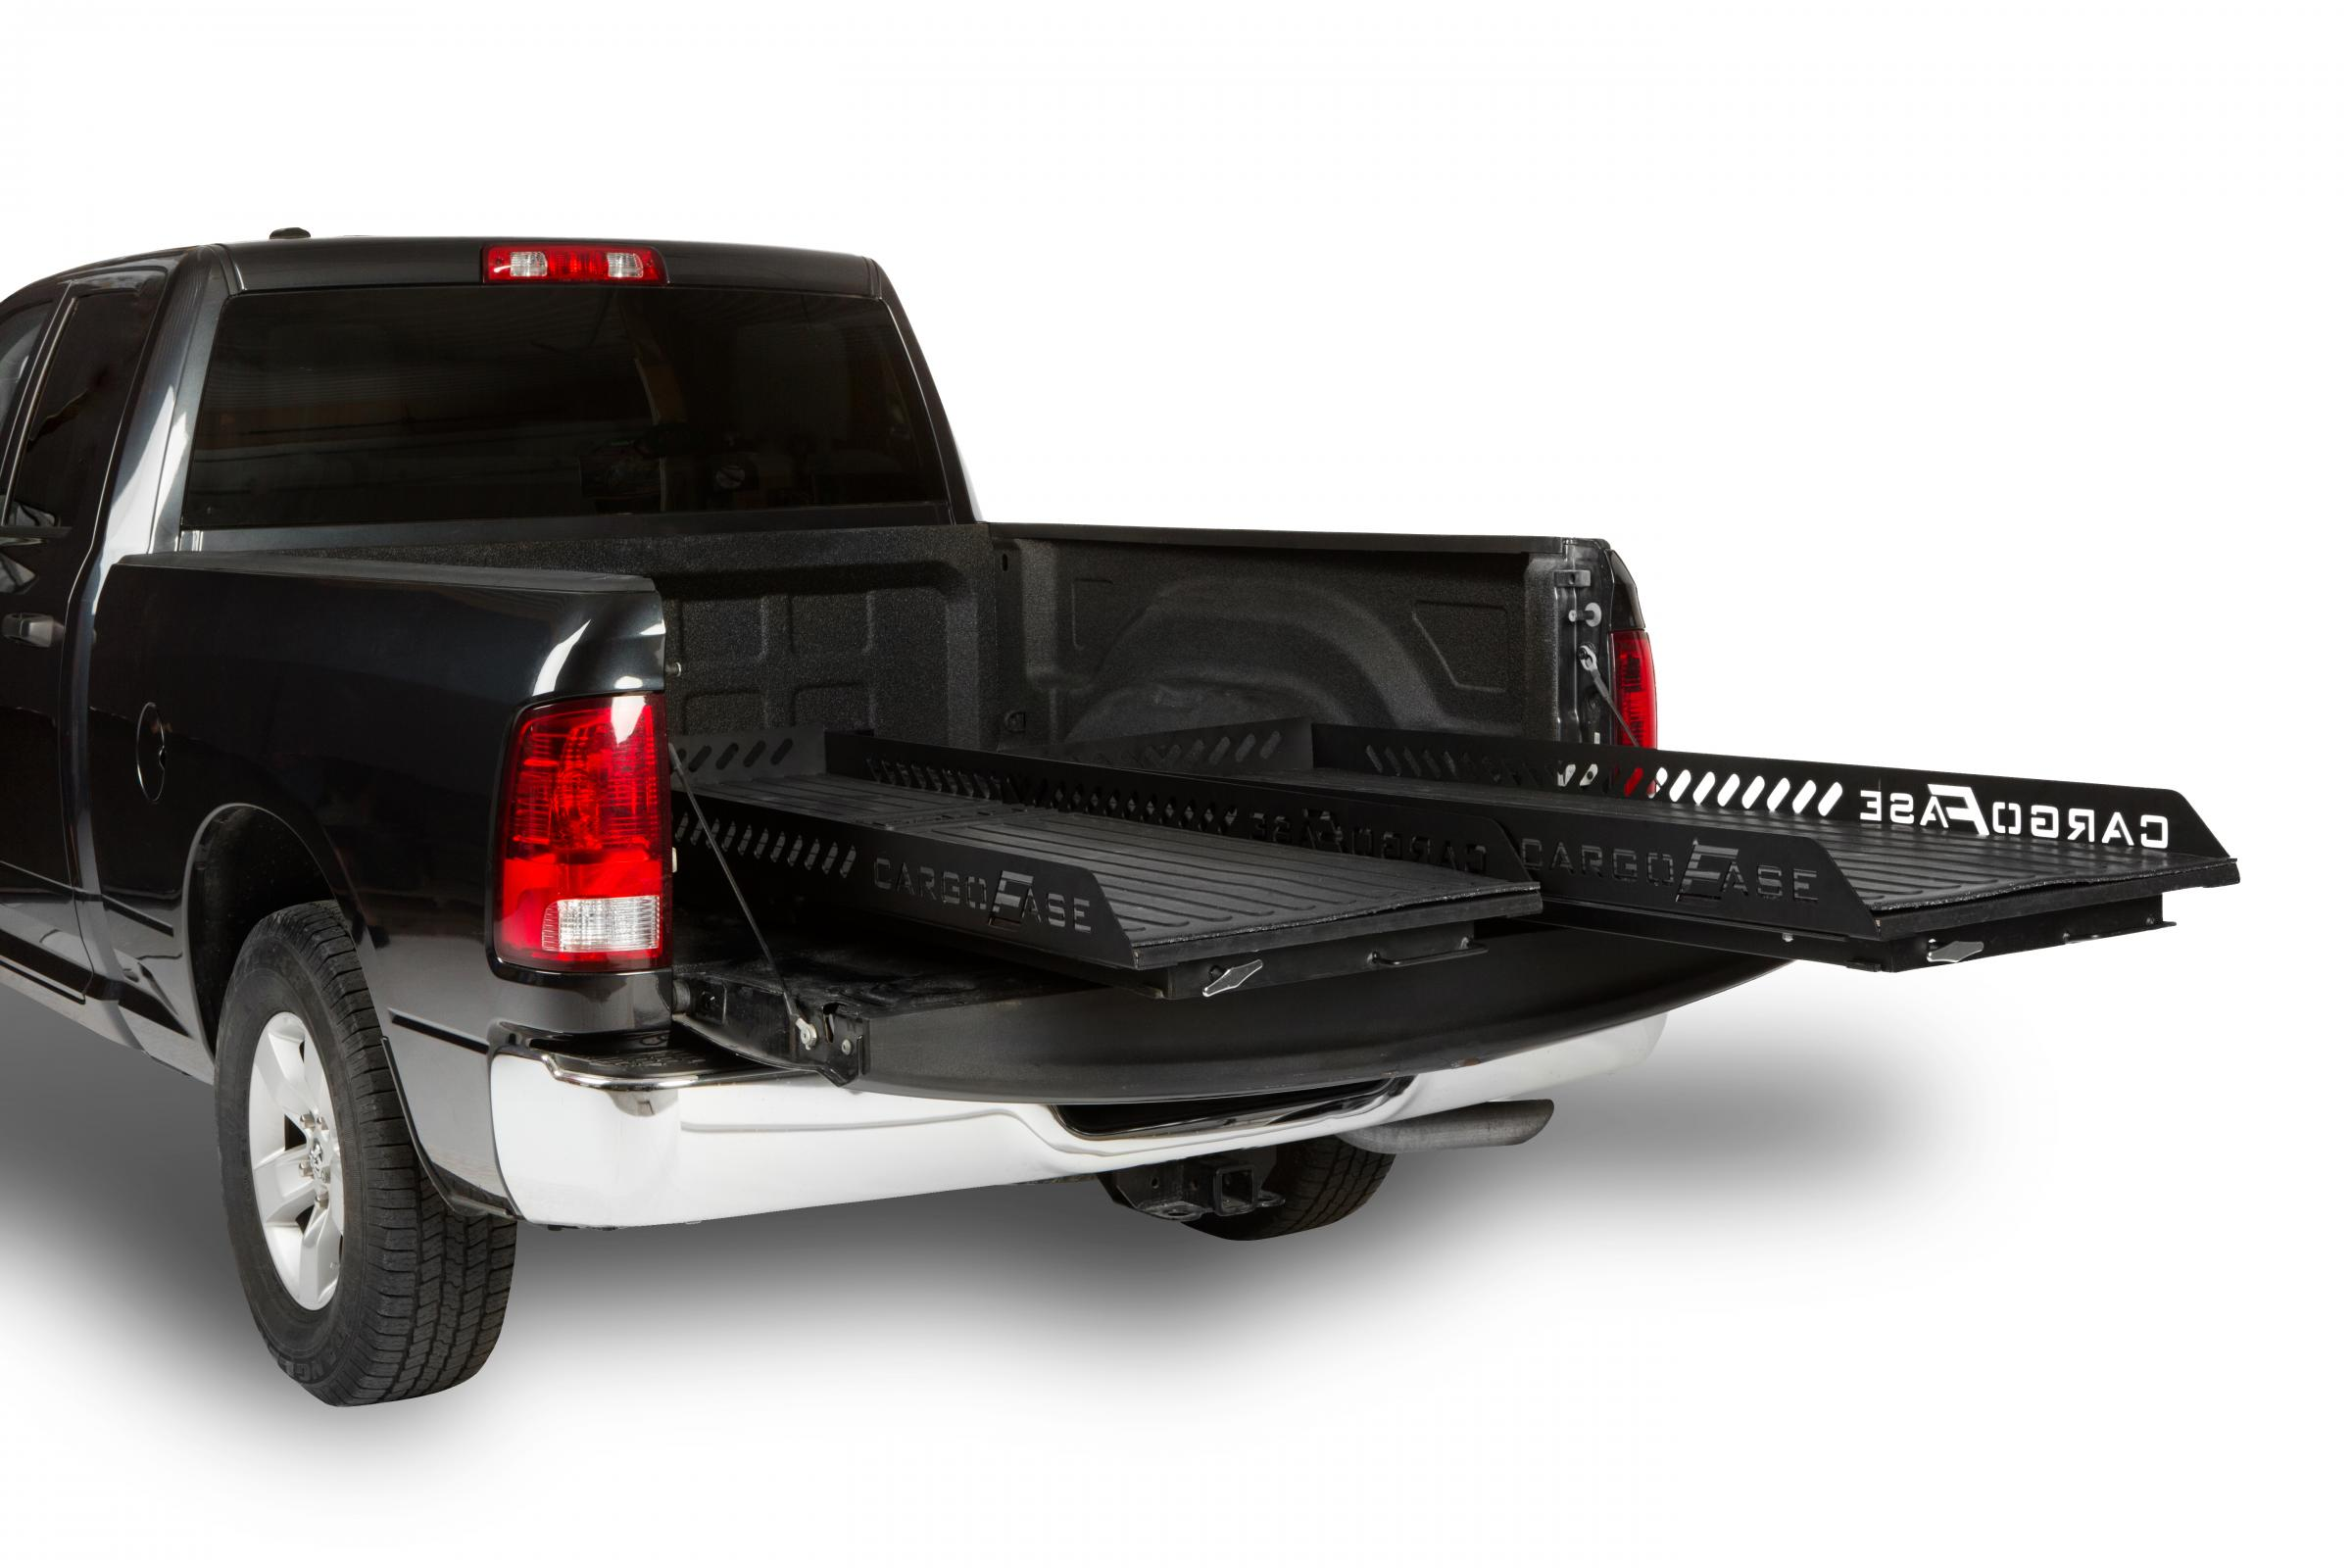 Cargo Ease Dual Slide Cargo Slide 1200 Lb Capacity (600 each side) 03-Pres Toyota Tacoma Double Cab Short Bed